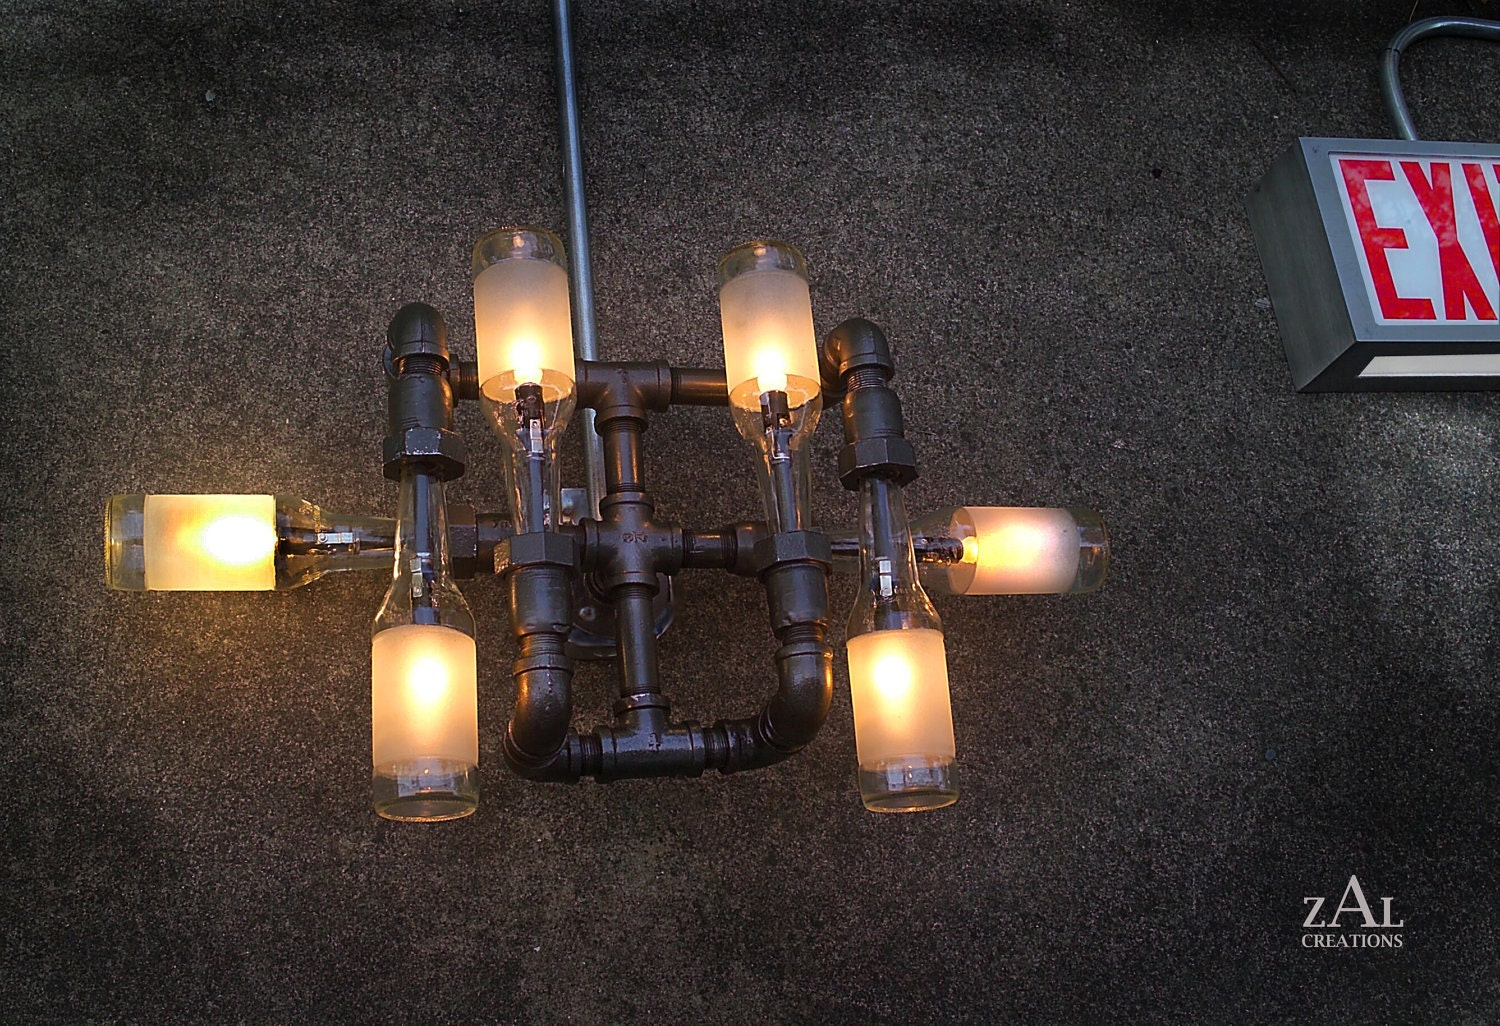 beer can and beer bottle light fixtures decor for a man